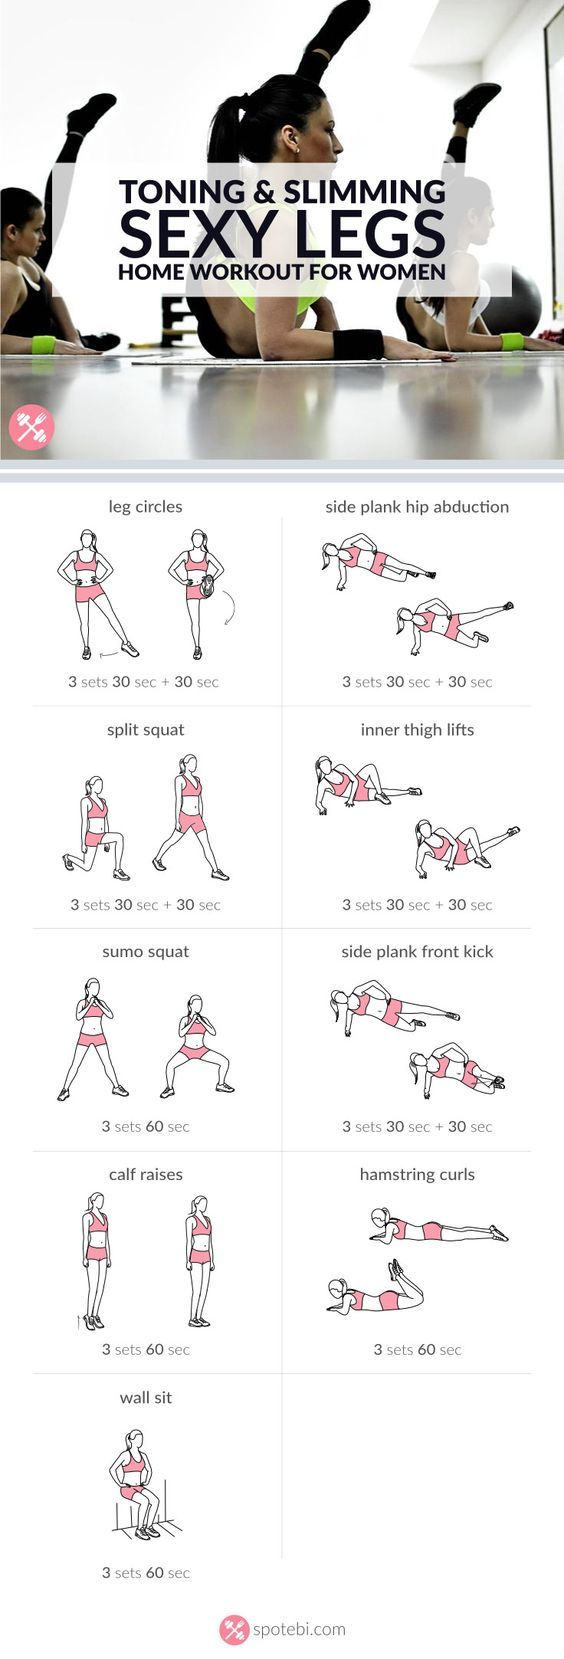 4 Exercises for Lean, Toned Legs #legworkouts #legs #workouts